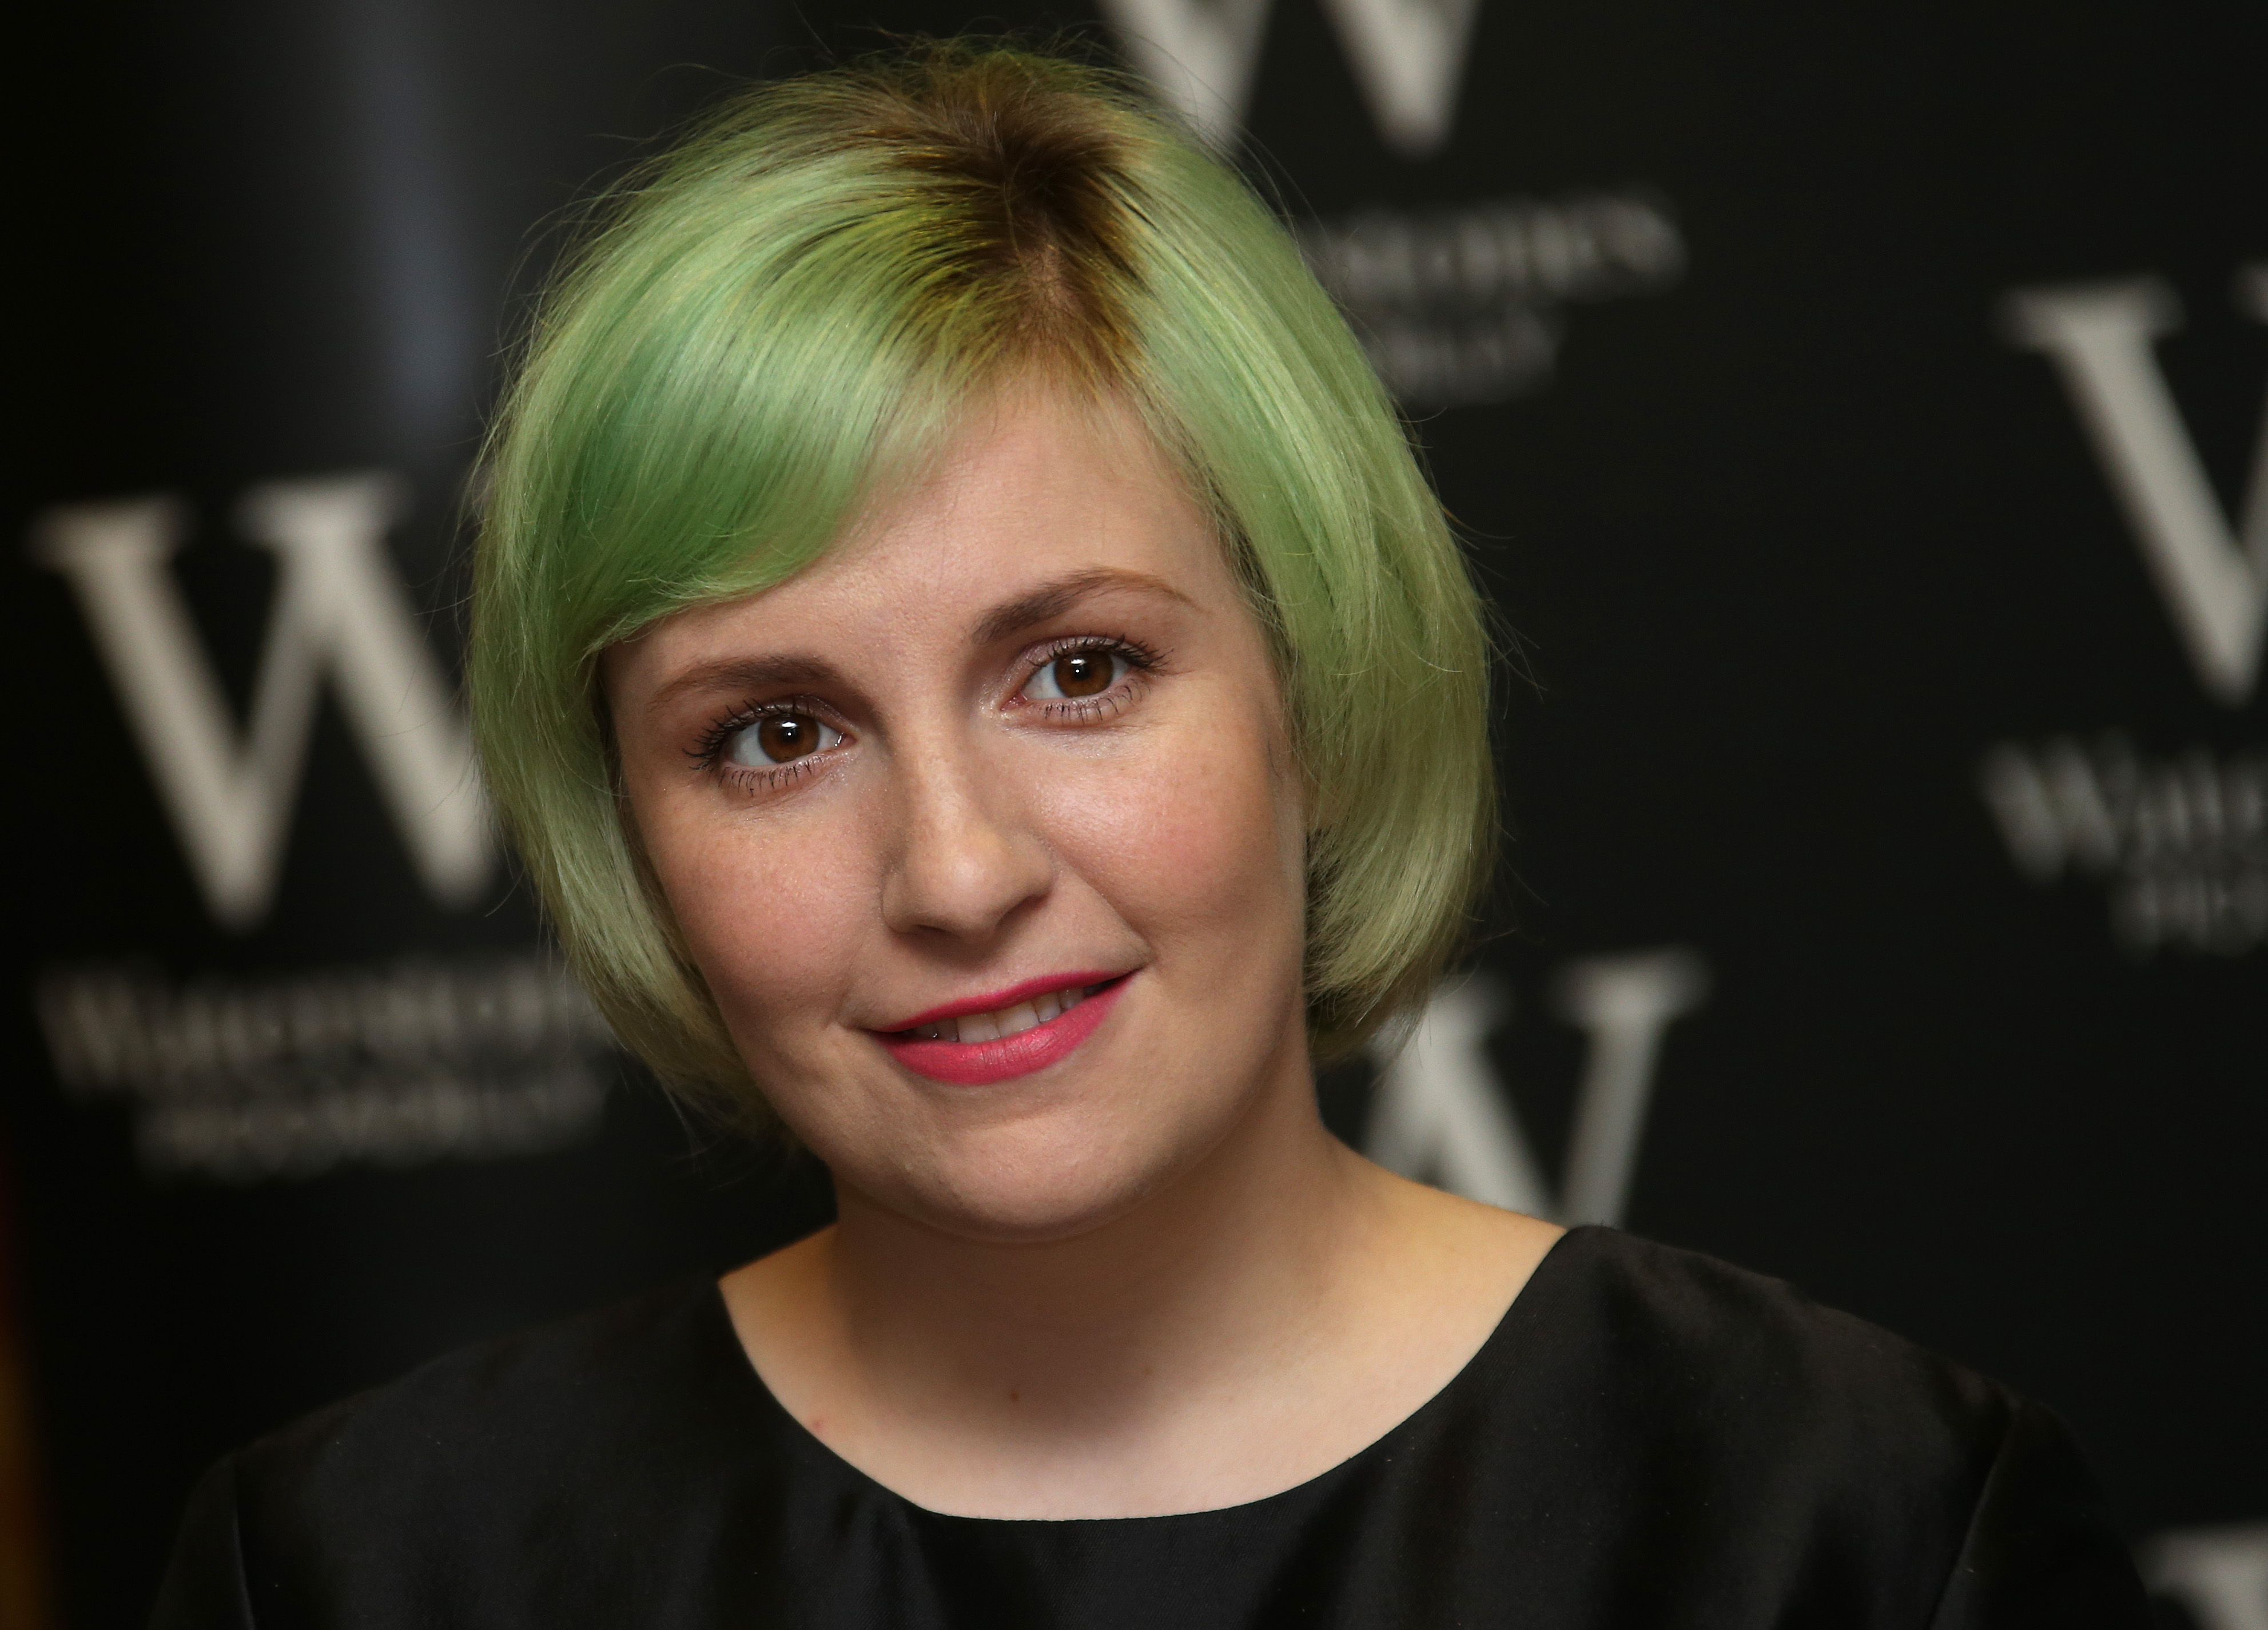 U.S actress Lena Dunham holds her memoir, Not That Kind Of Girl, ahead of a book signing at Waterstones, Piccadilly in central London, Wednesday, Oct. 29, 2014